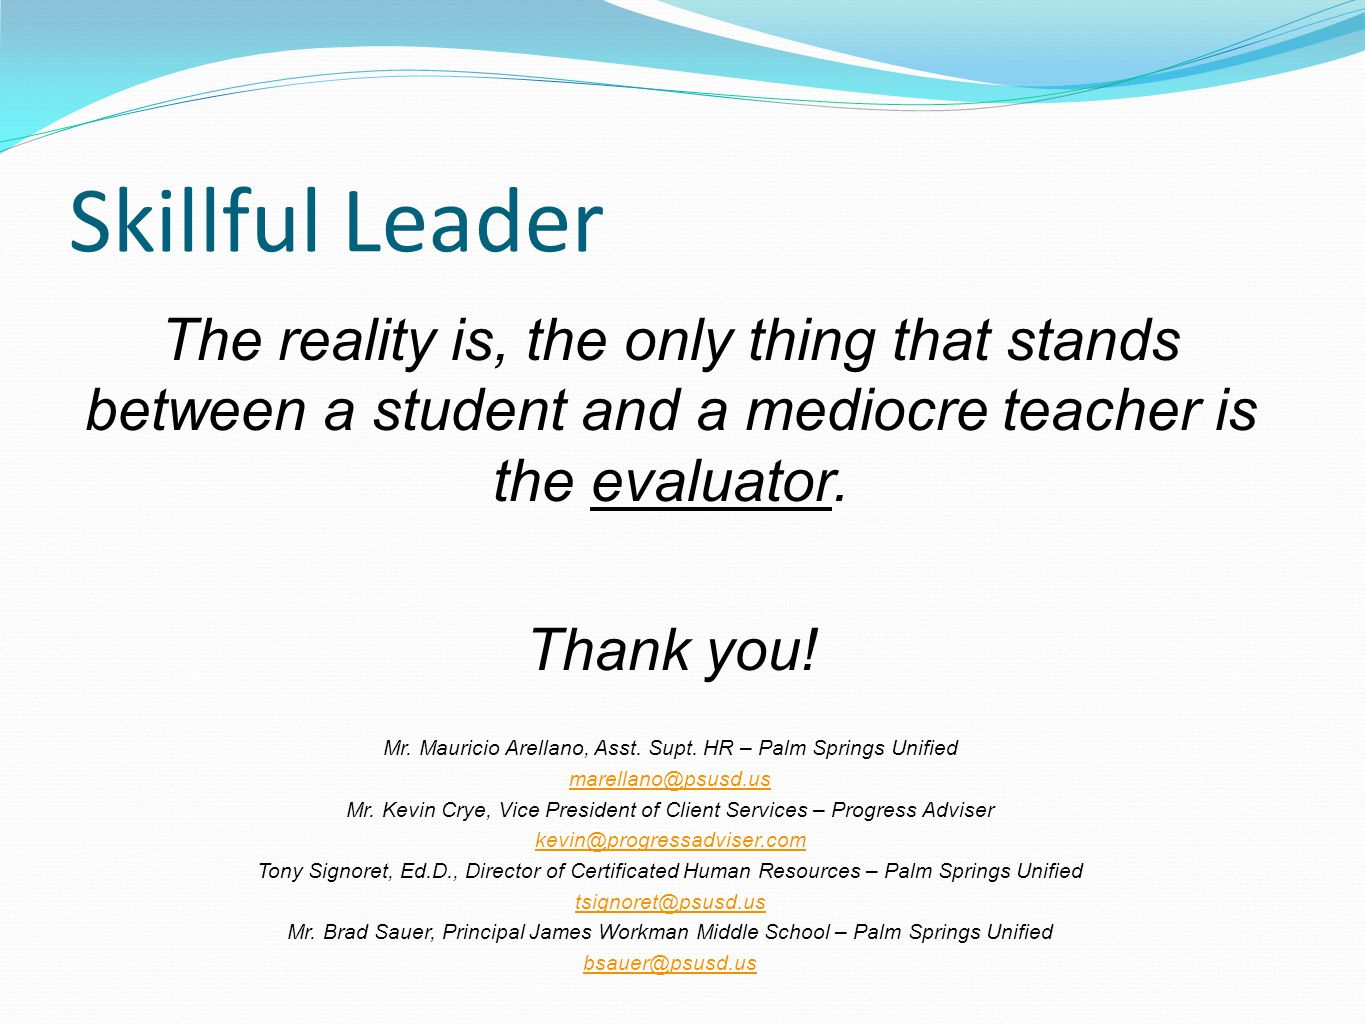 Skillful Leader The reality is, the only thing that stands between a student and a mediocre teacher is the evaluator. Thank you! Mr. Mauricio Arellano